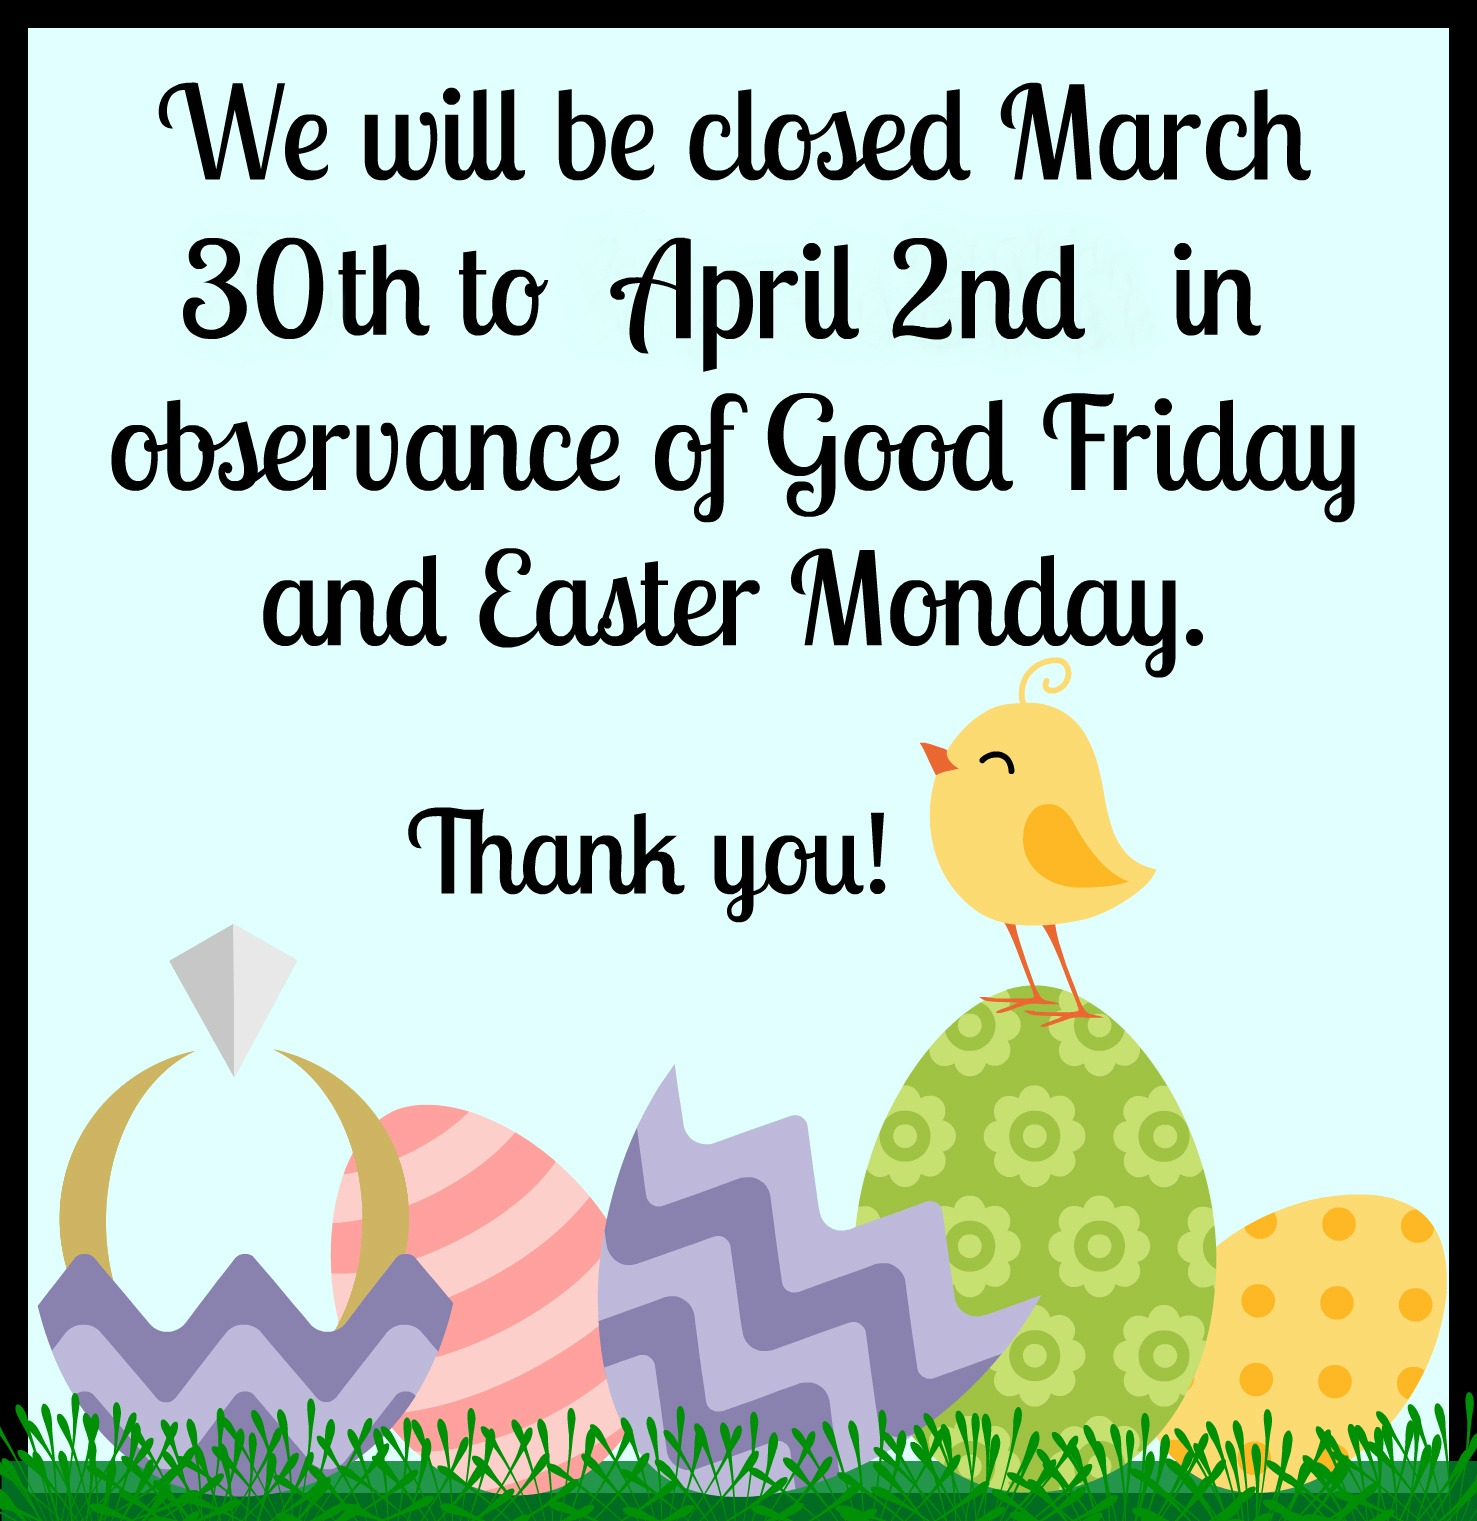 Easter Holiday Sign 2018.jpg